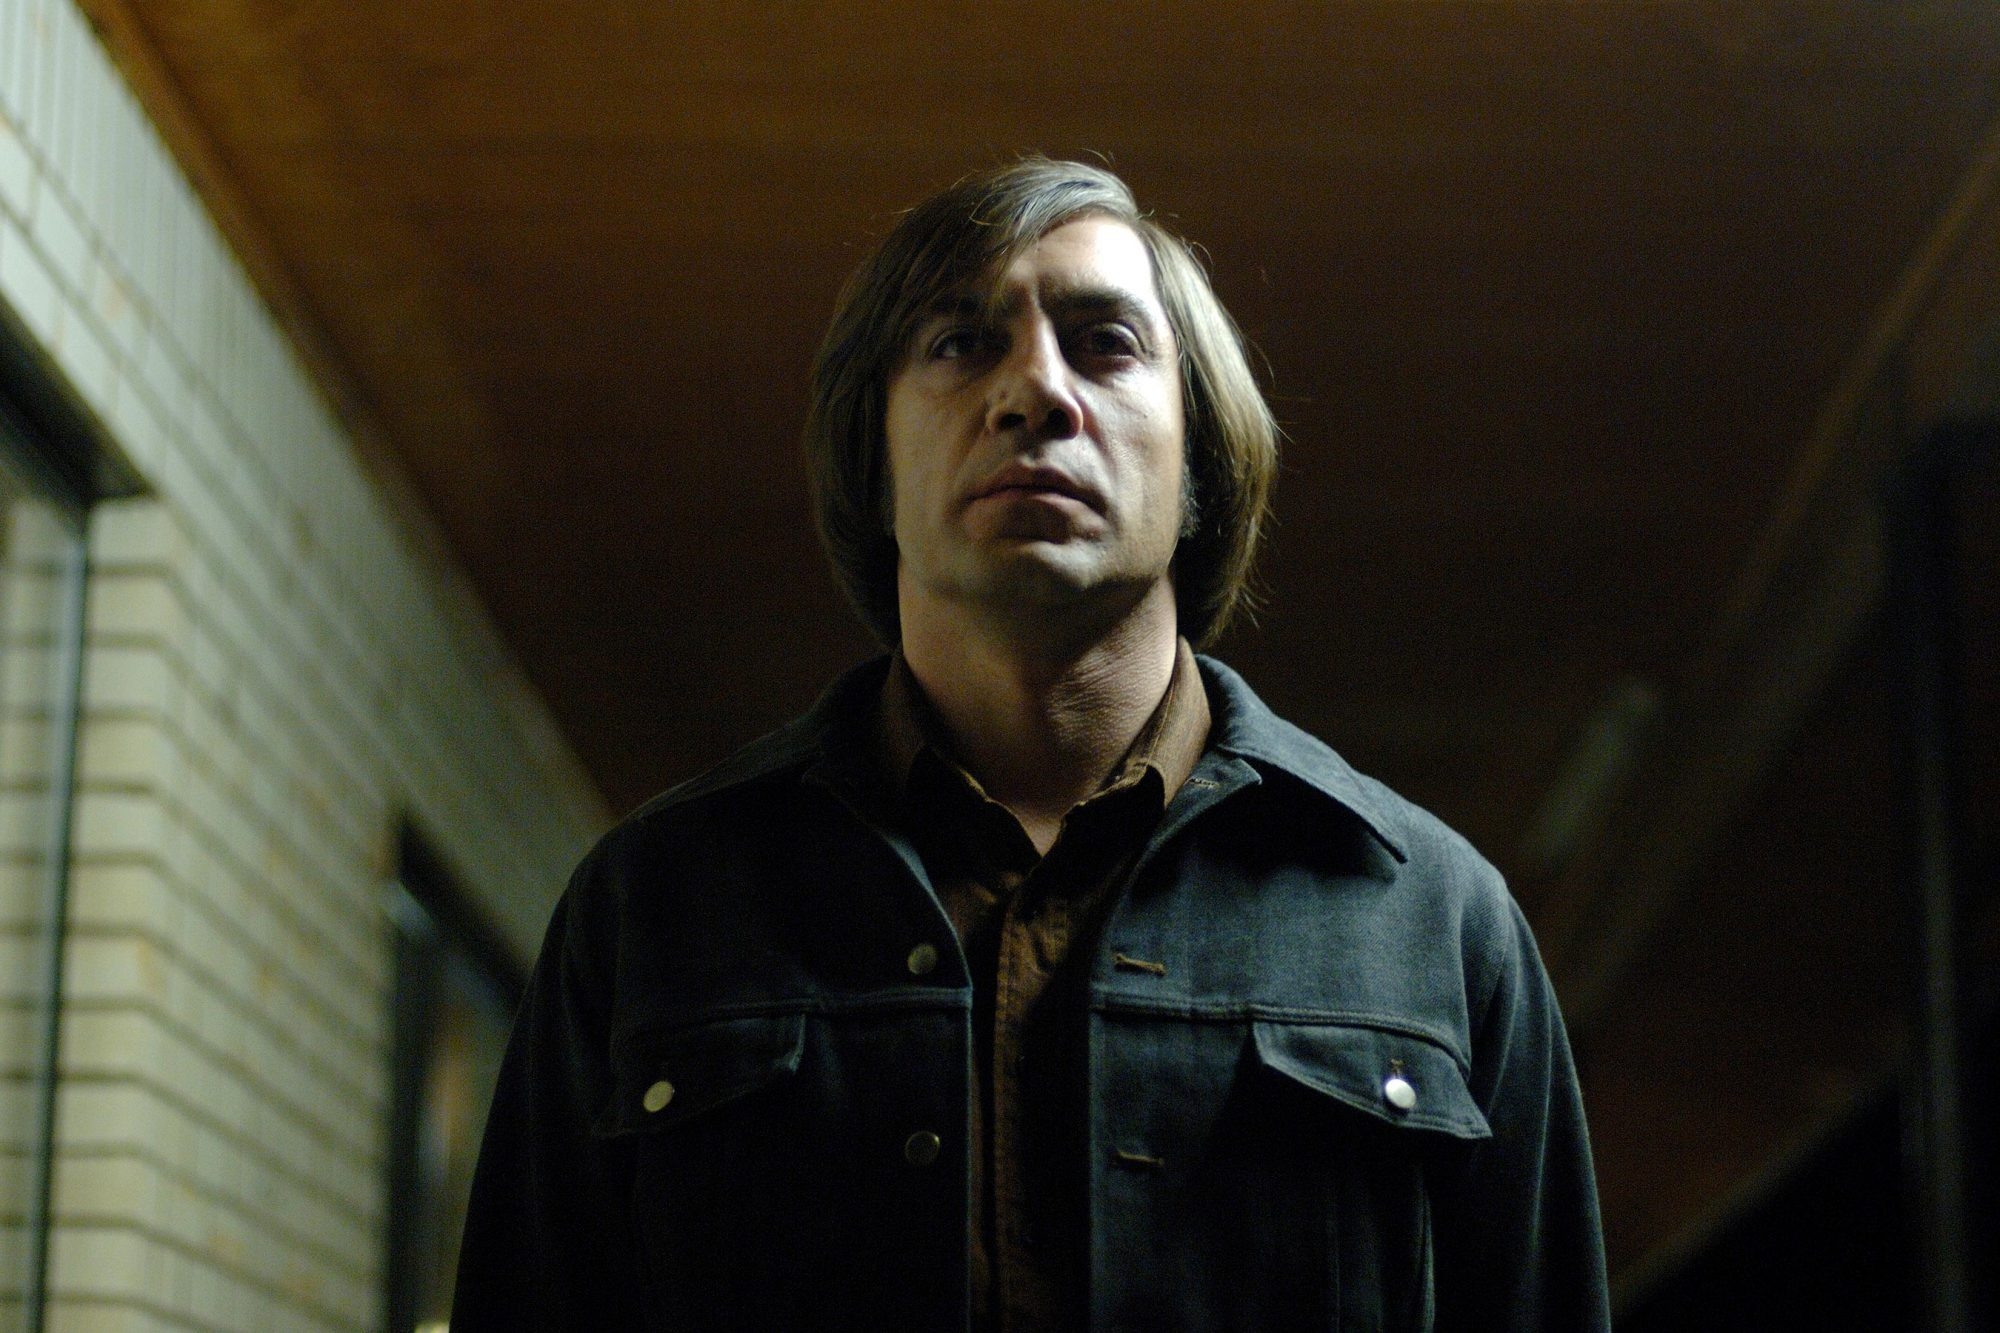 NO COUNTRY FOR OLD MEN (2007) Javier Bardem as Anton Chigurh